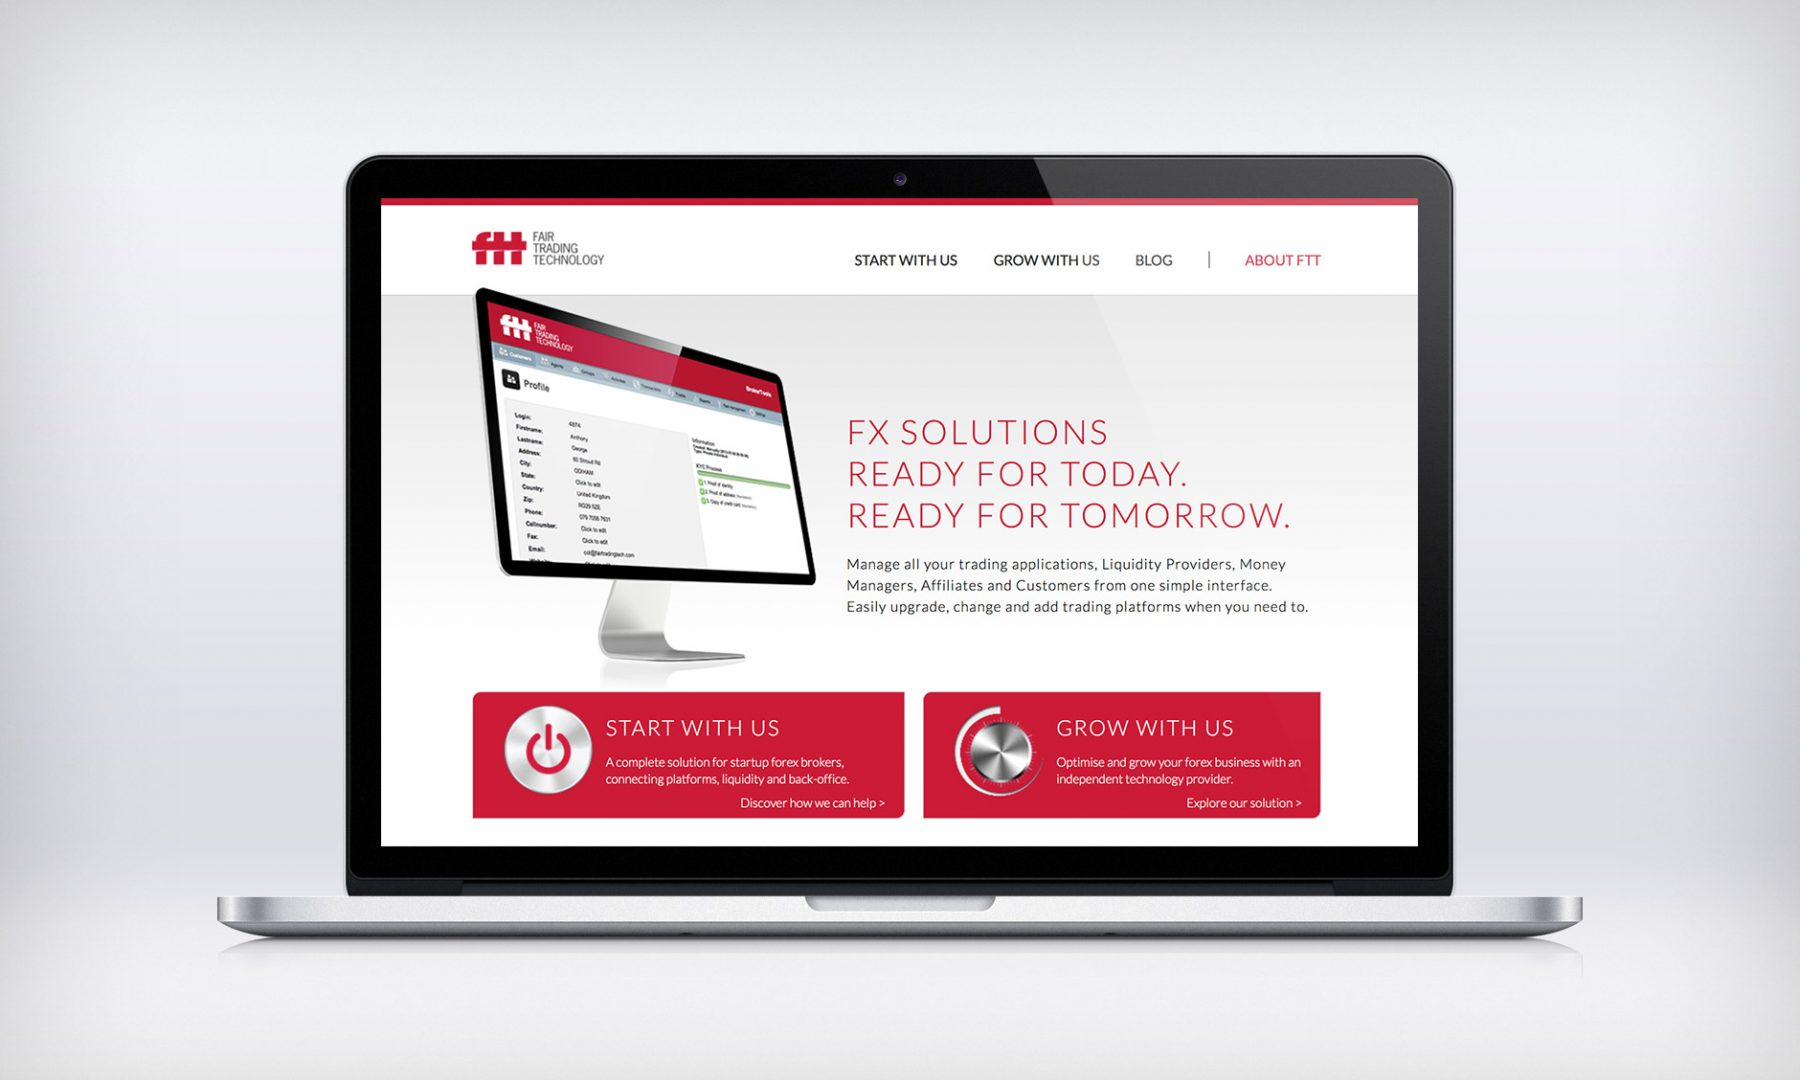 Fair Trading technology's B2B home page.